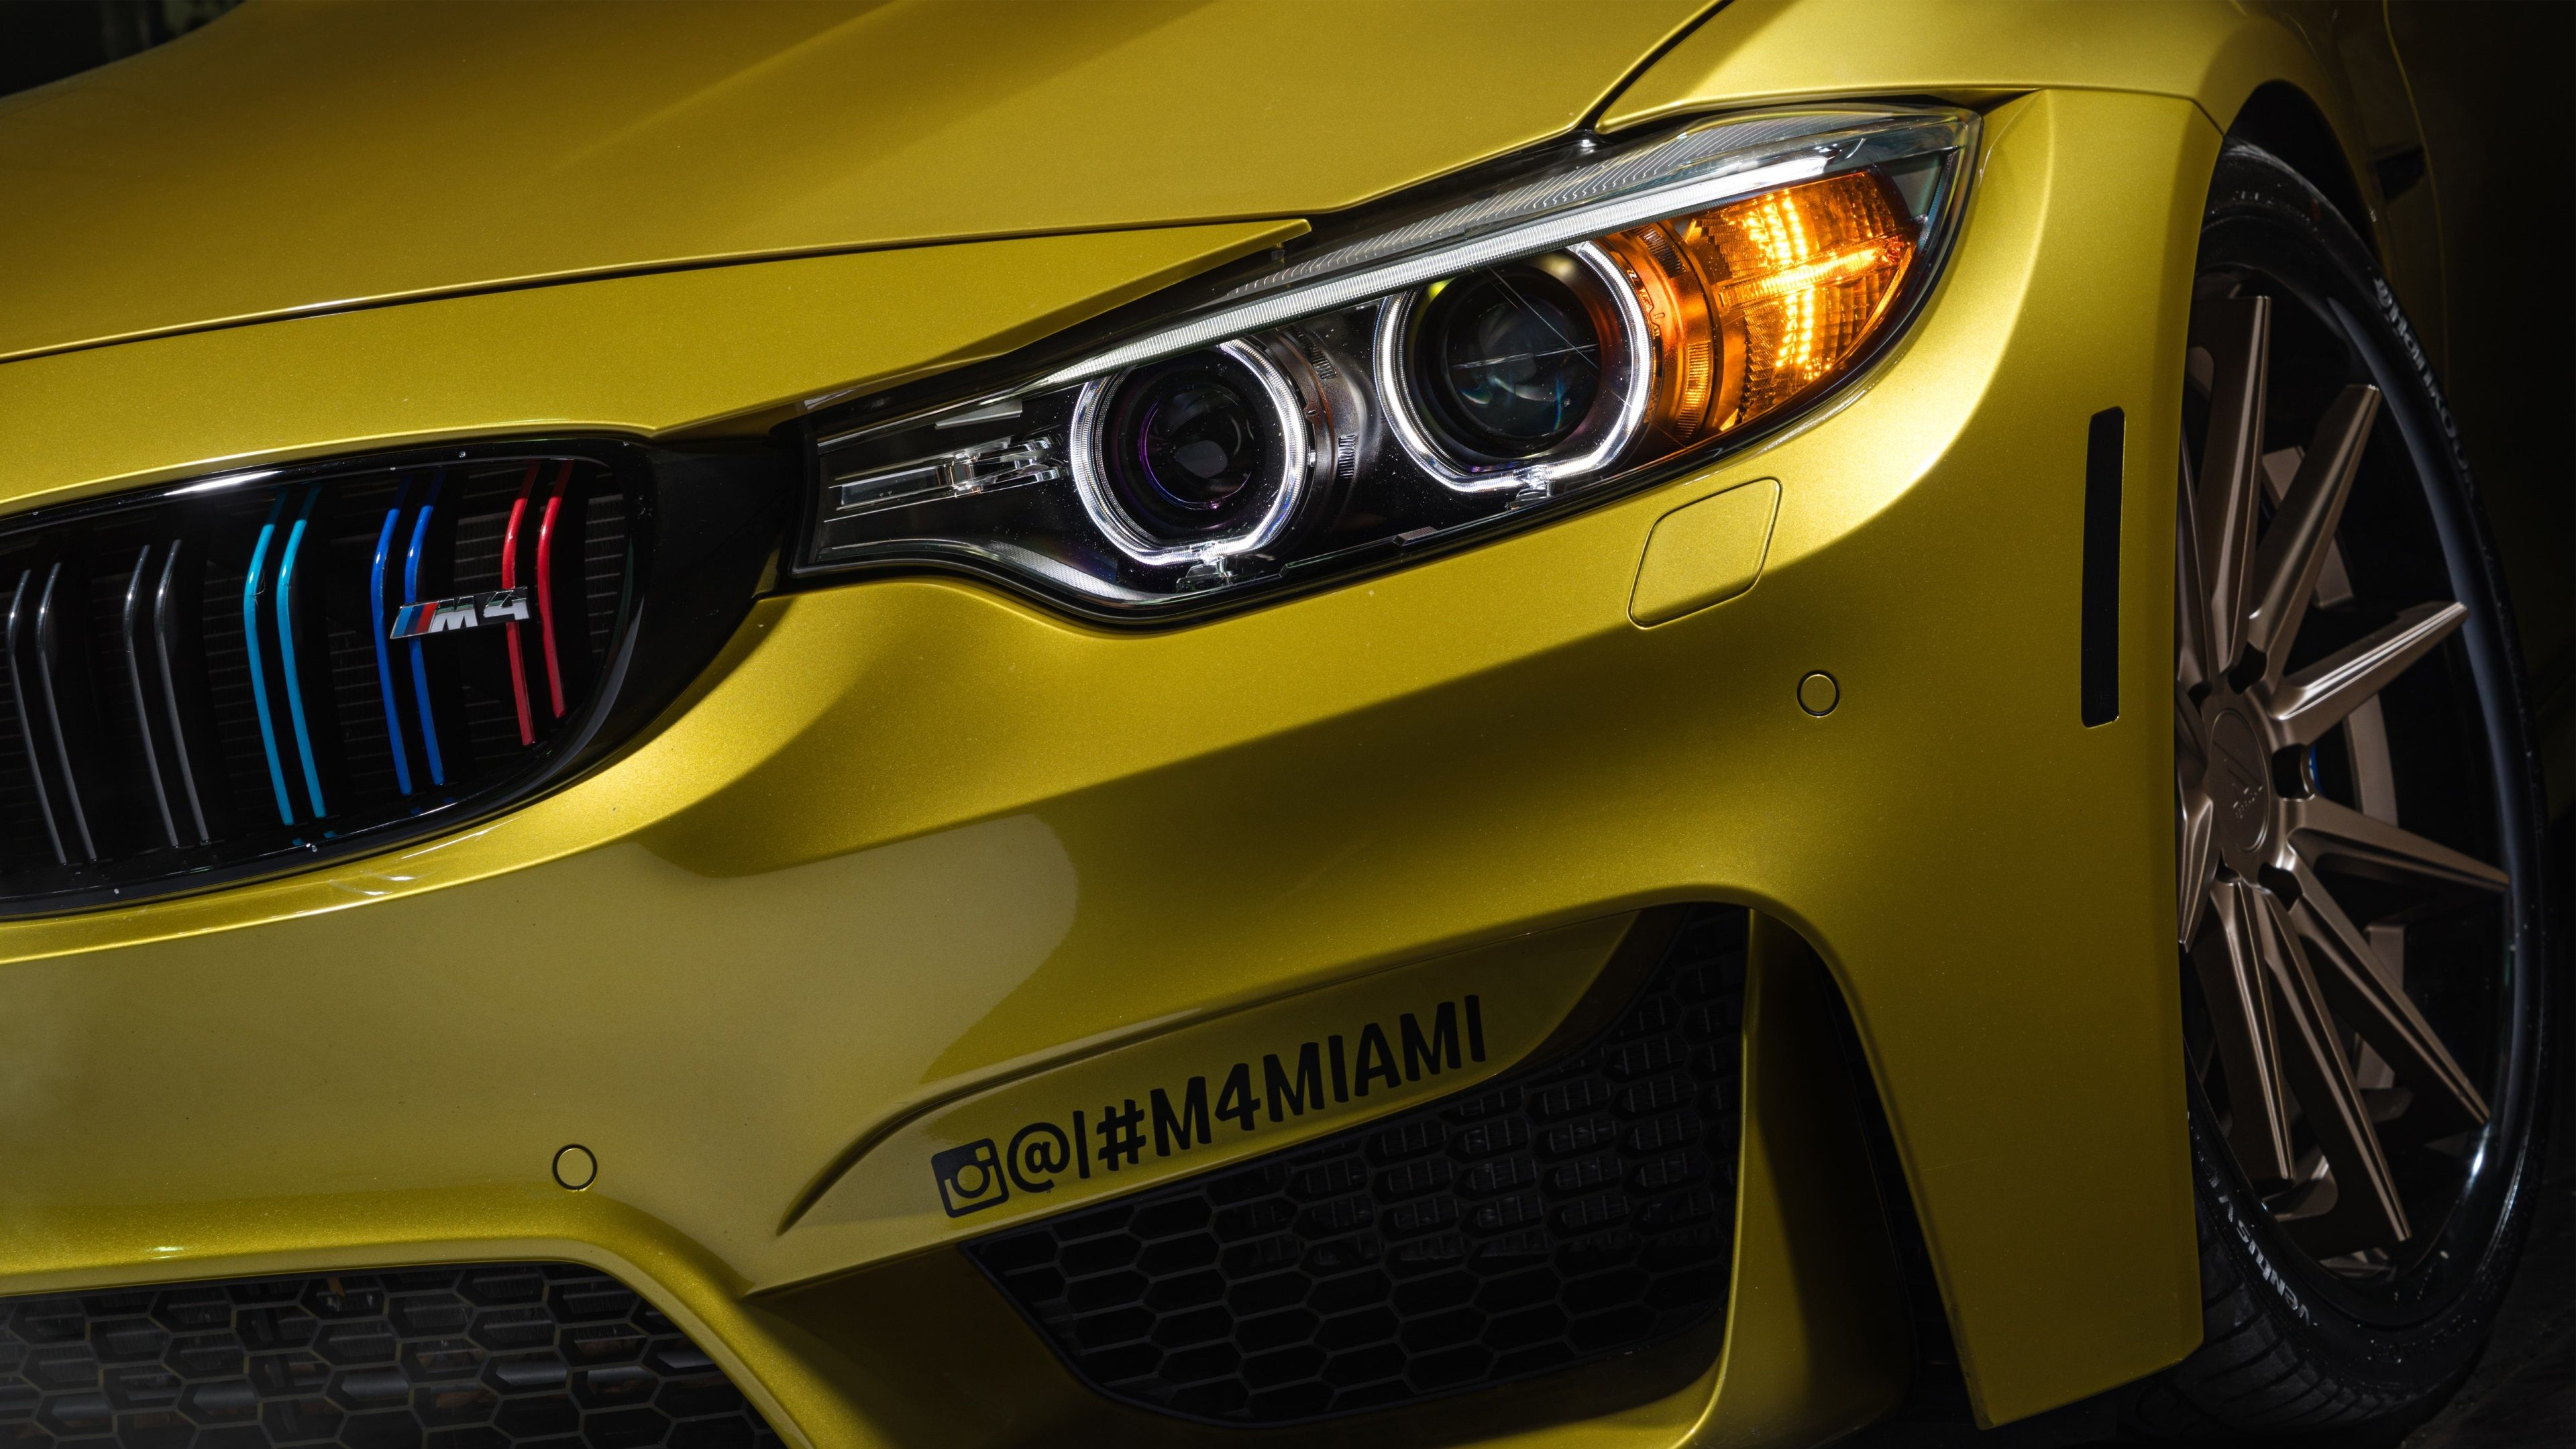 3840x2160 Bmw M4 4k Downloading Wallpaper For Pc In 2020 Bmw Bmw M4 Bmw Wallpapers